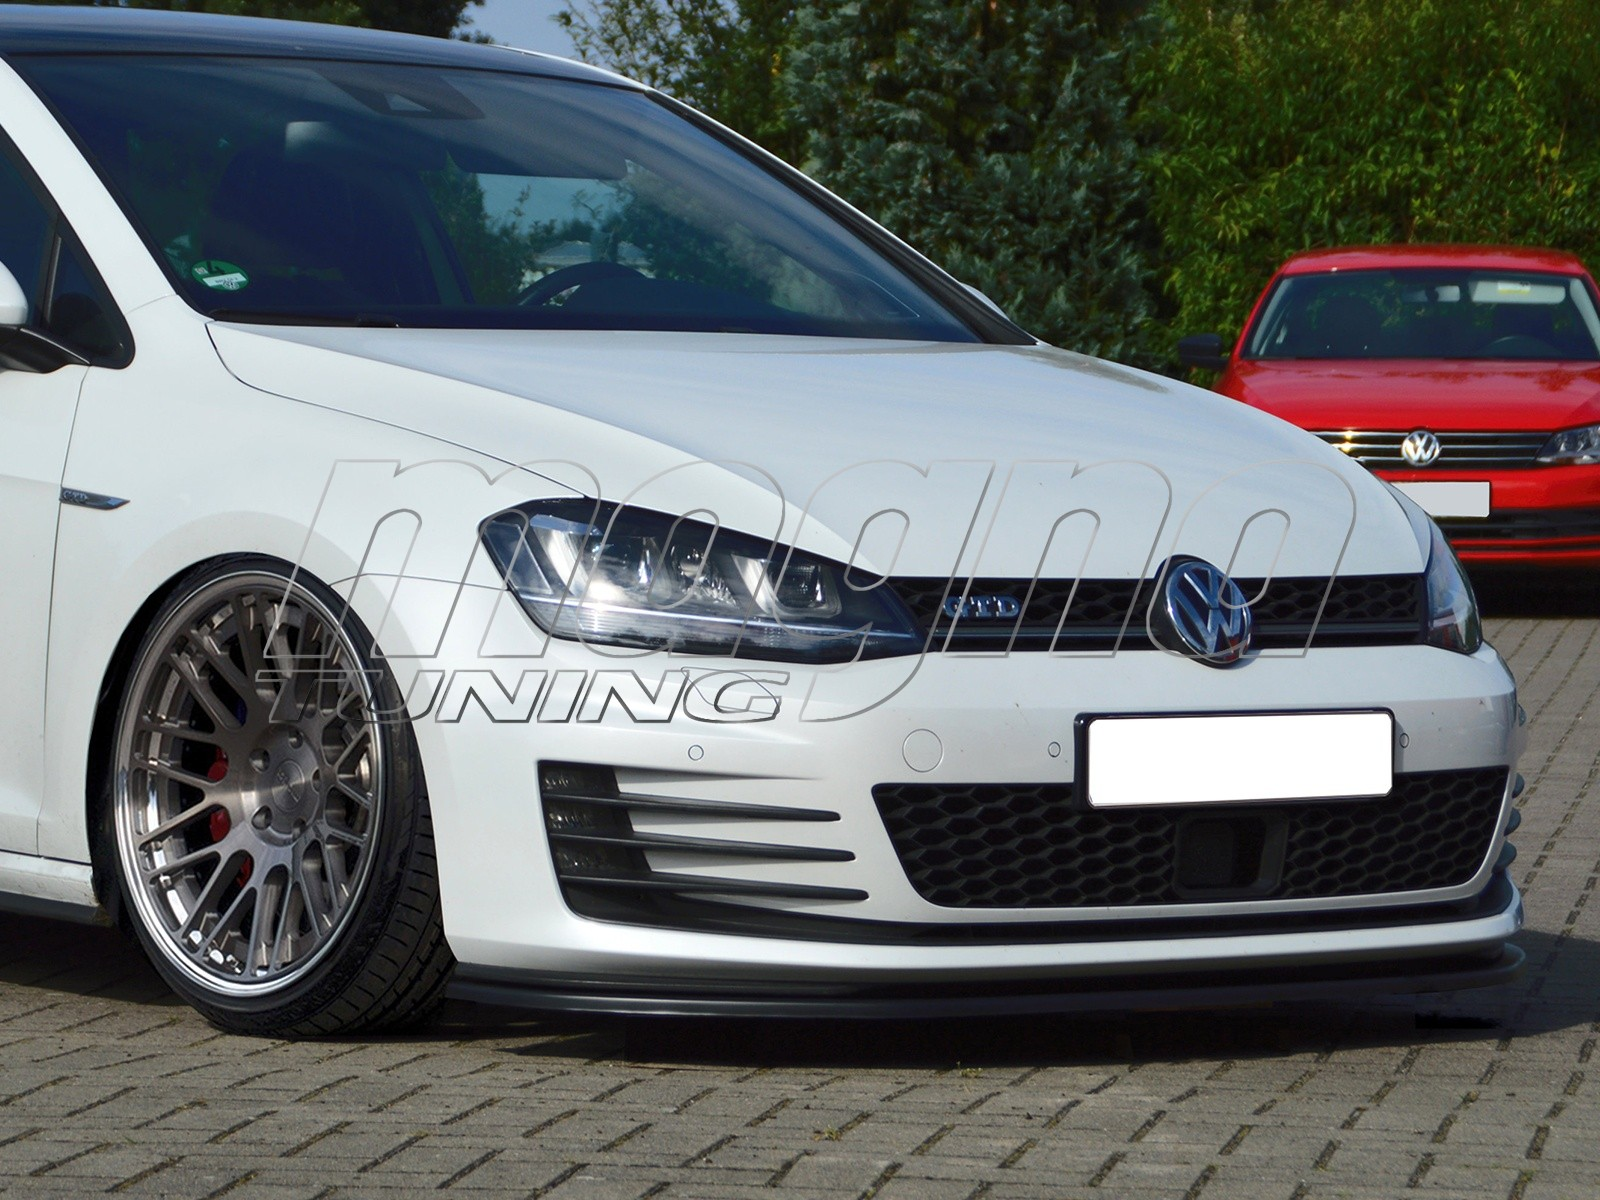 vw golf 7 gti gtd i line front bumper extension. Black Bedroom Furniture Sets. Home Design Ideas